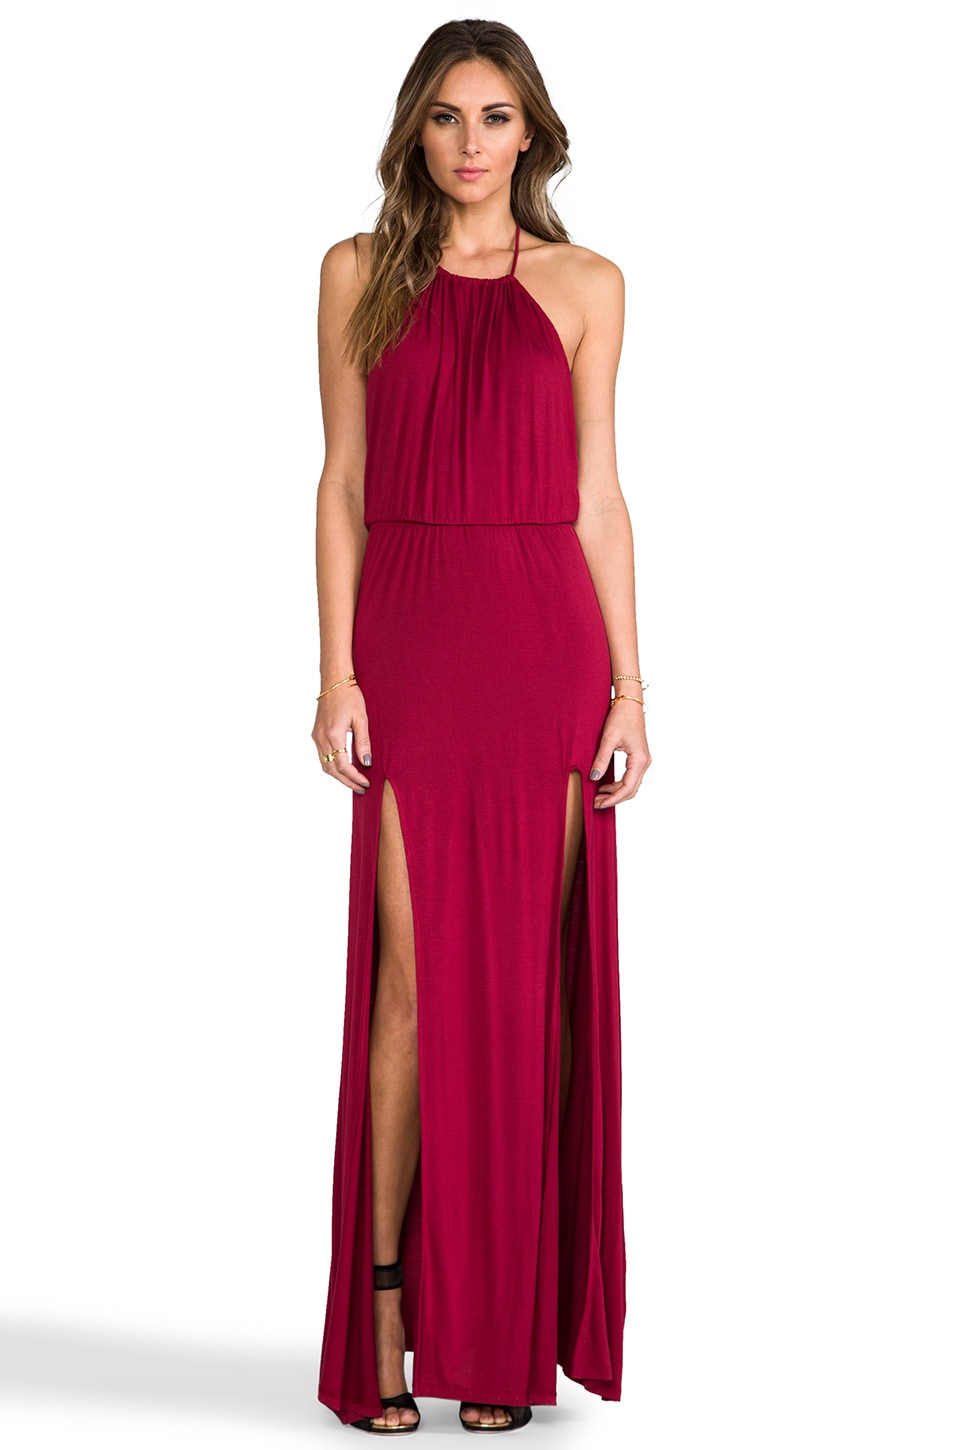 Lovers + Friends Smokin' Hot Maxi Dress in Scarlet